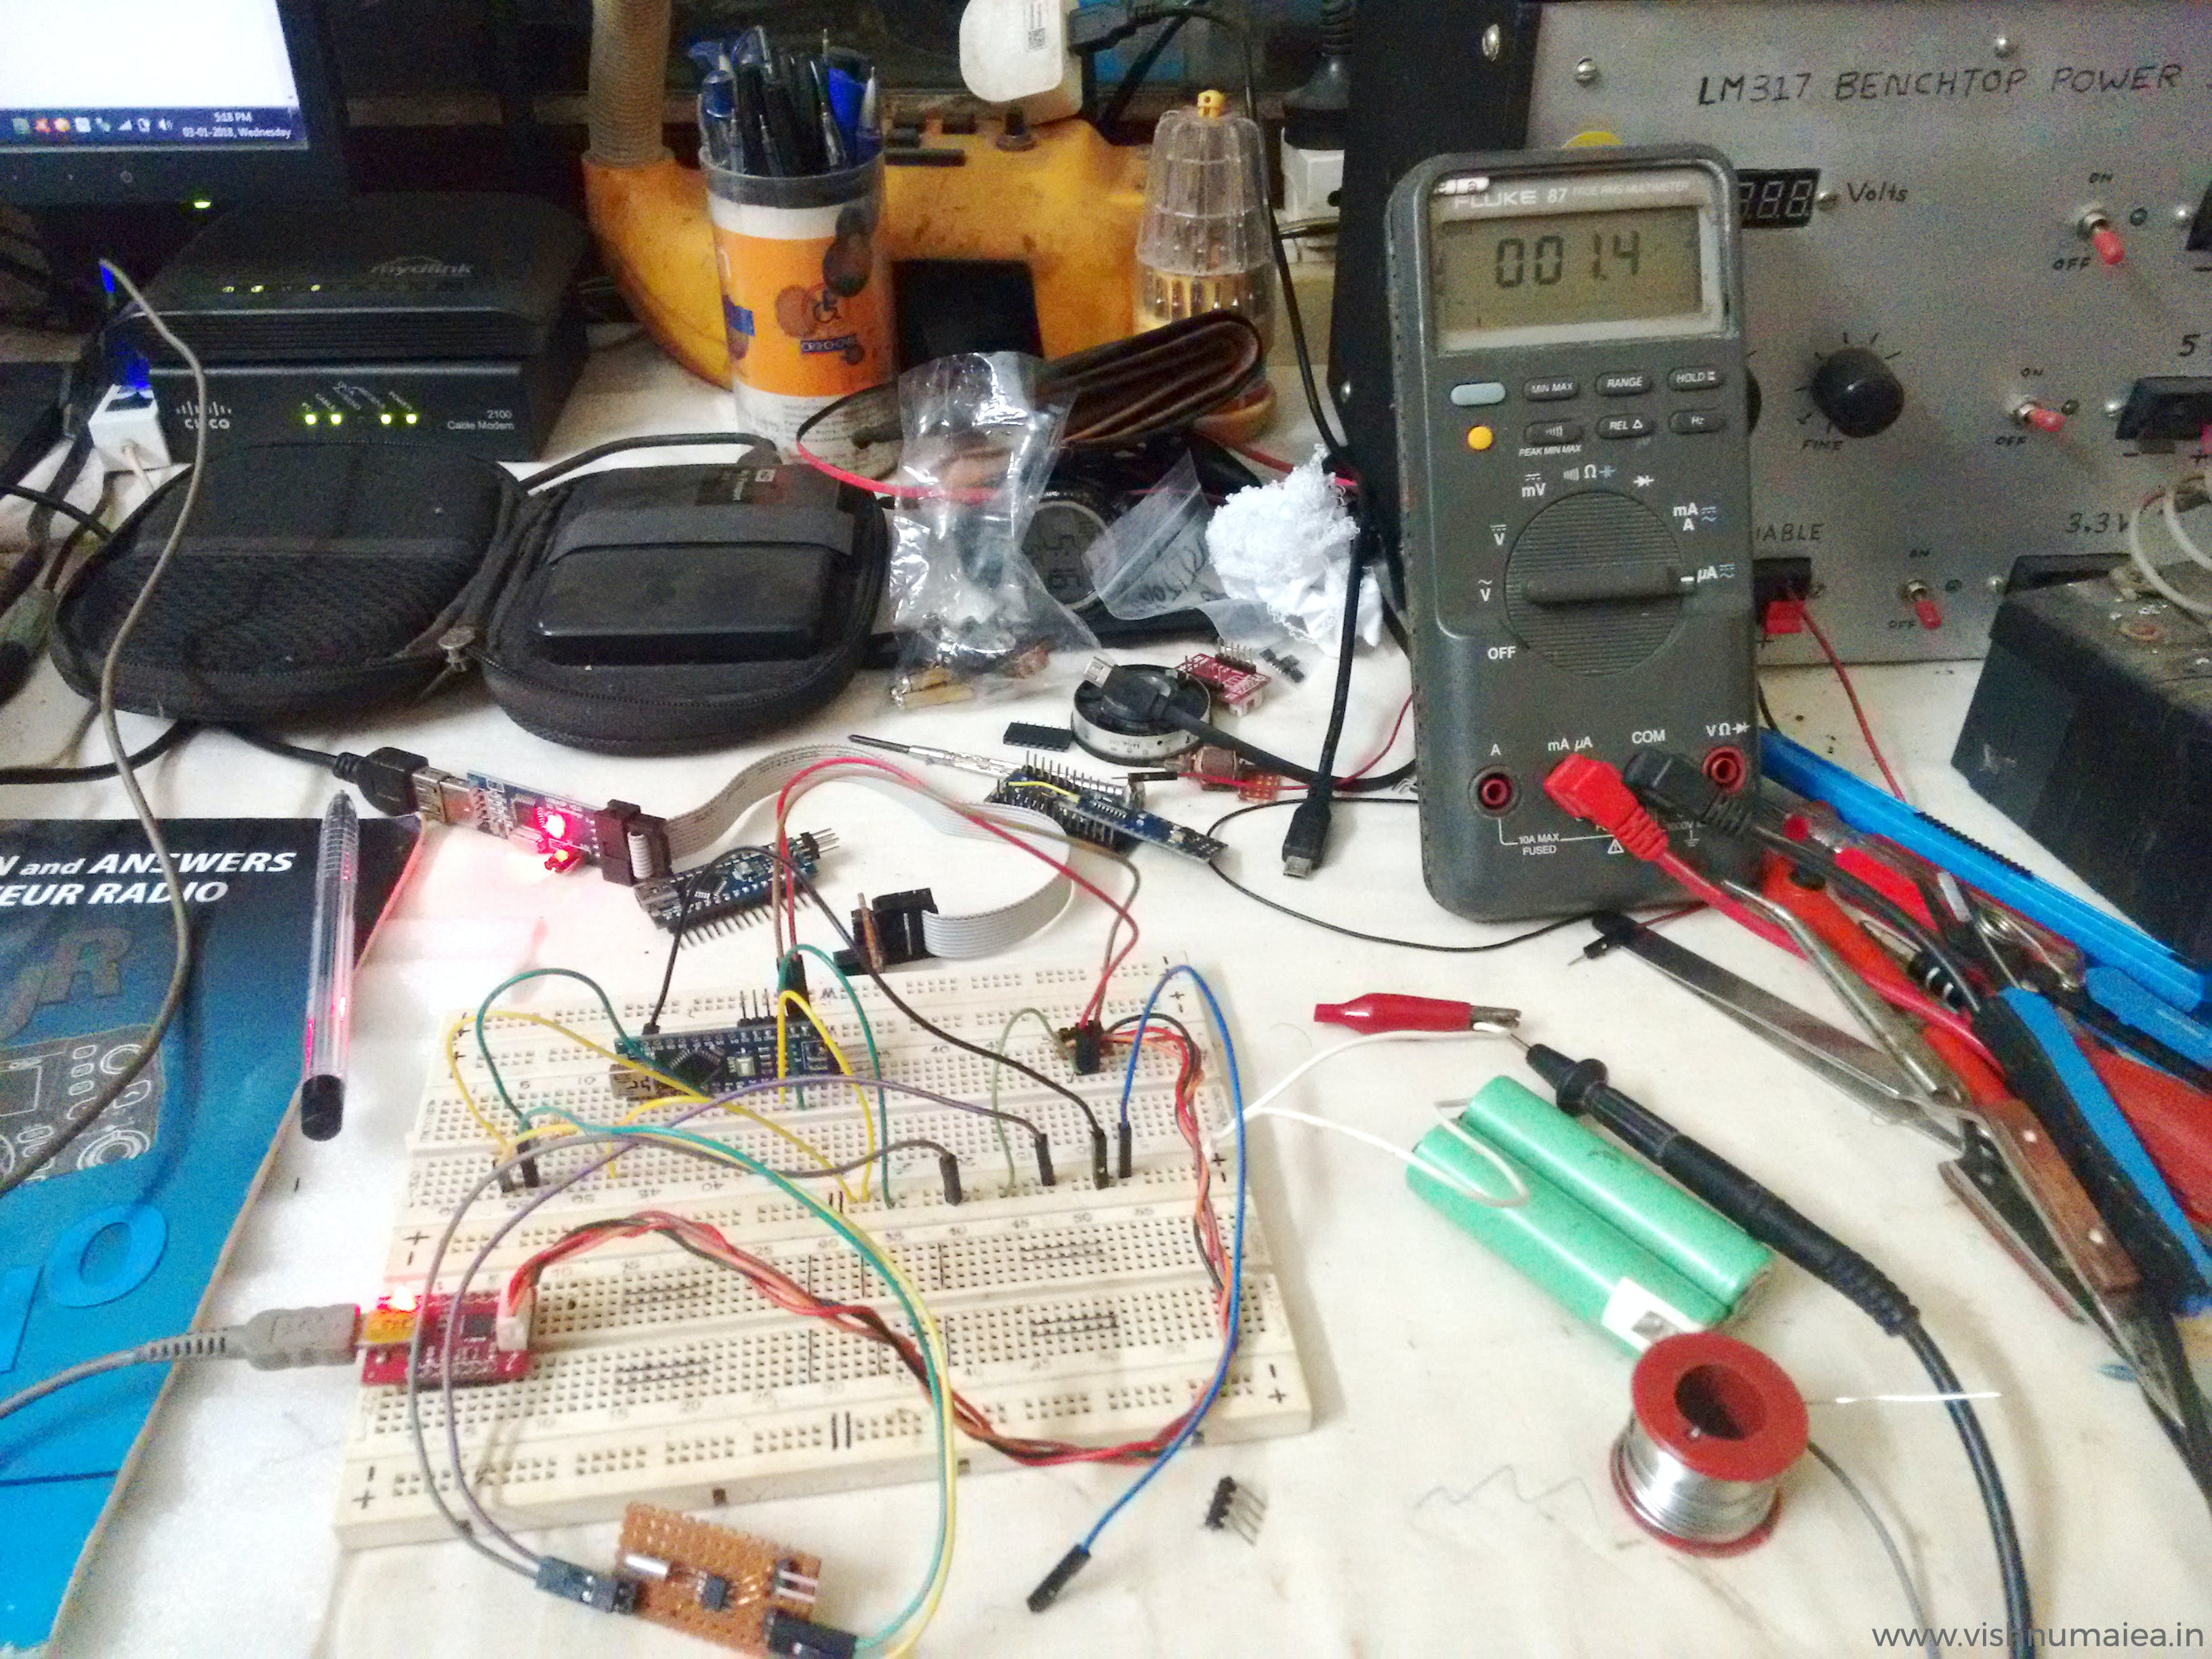 This is my table like when I was testing this - all basic stuff!